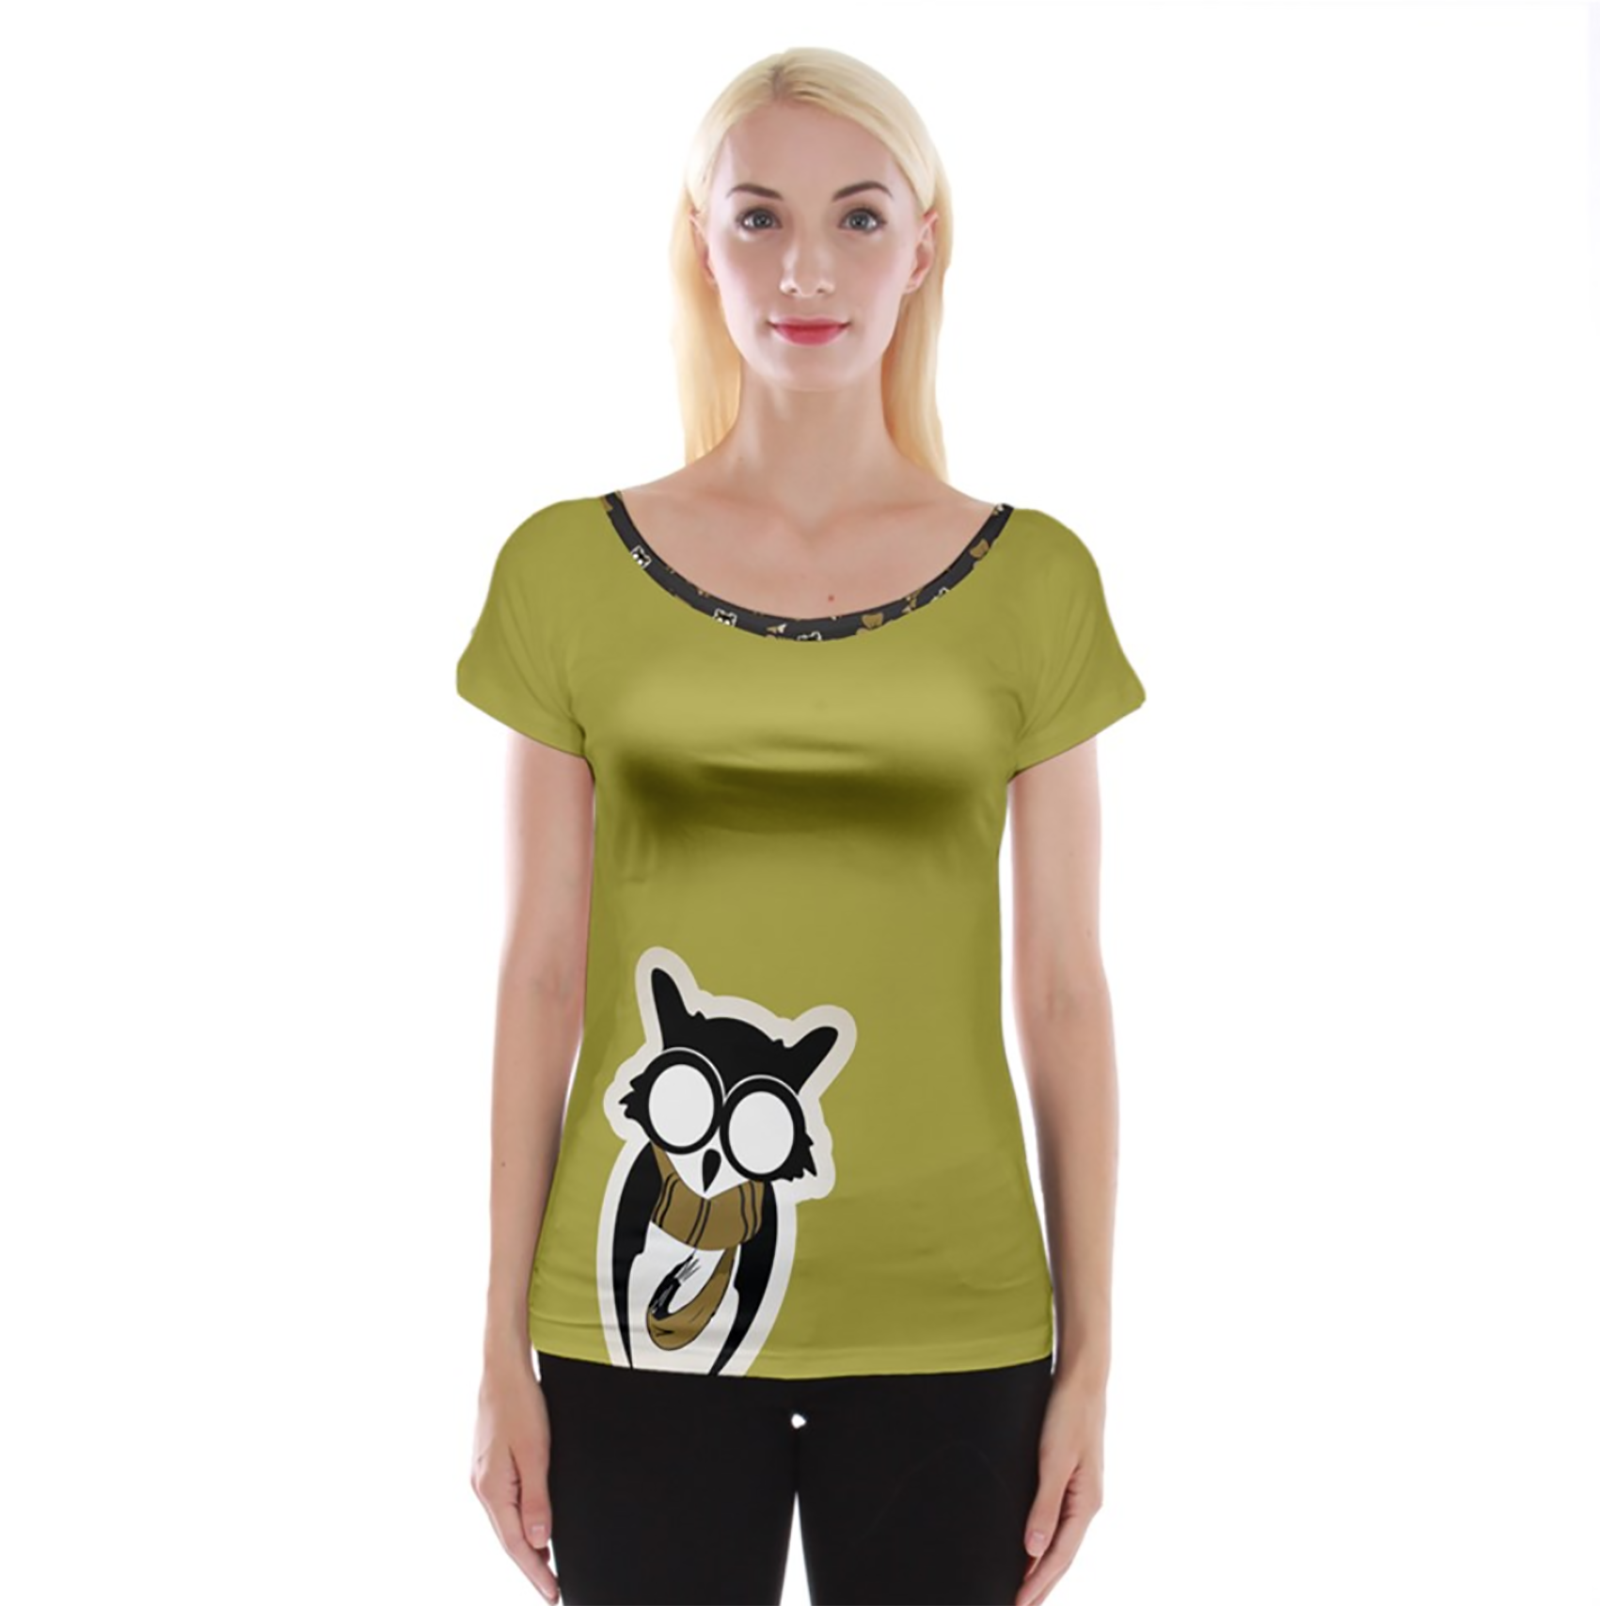 Yellow/Black Owl Cap Sleeve Top - Inspired by Hufflepuff